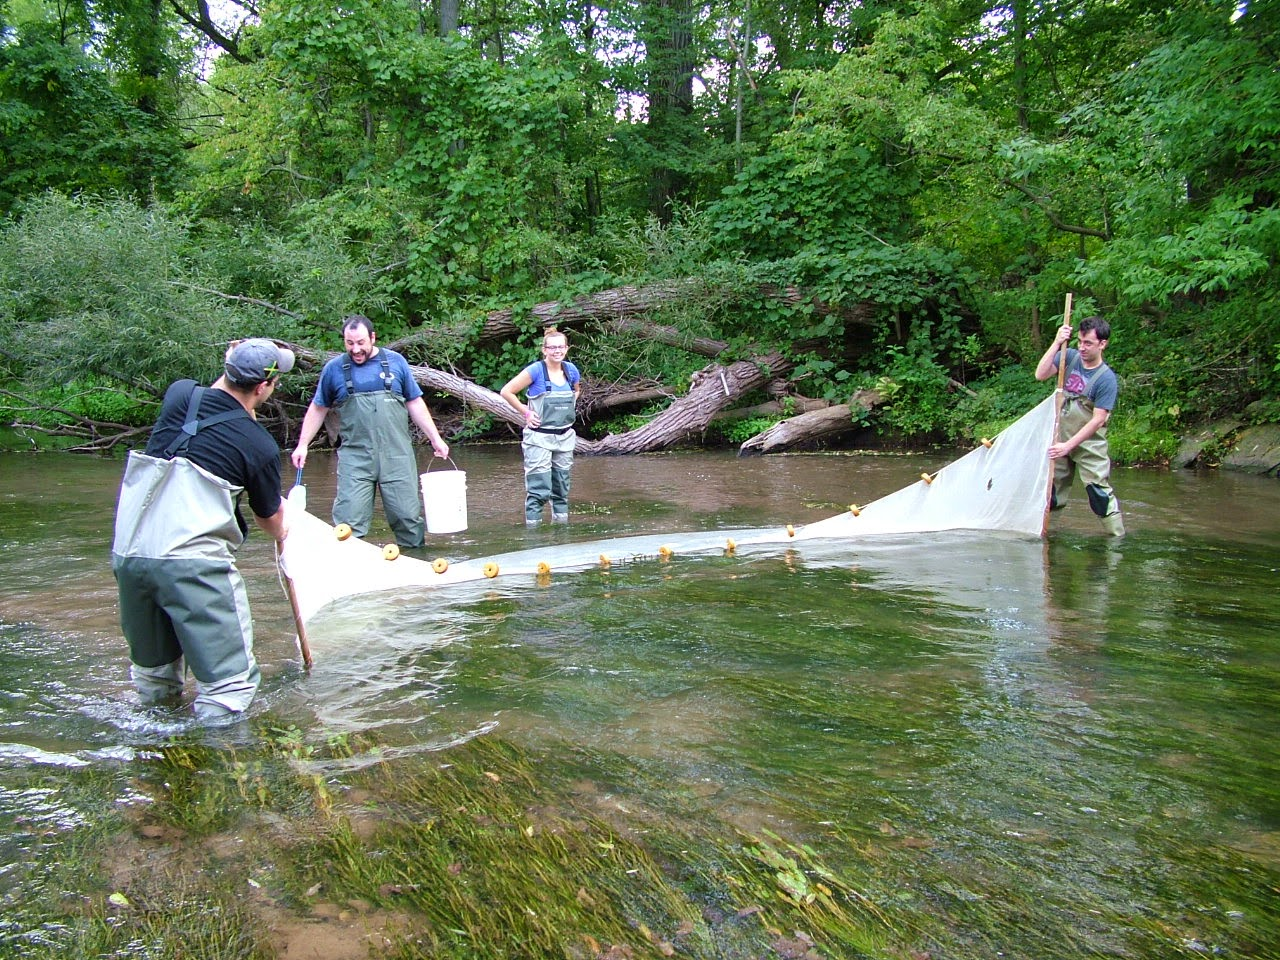 Men fishing a river with a net